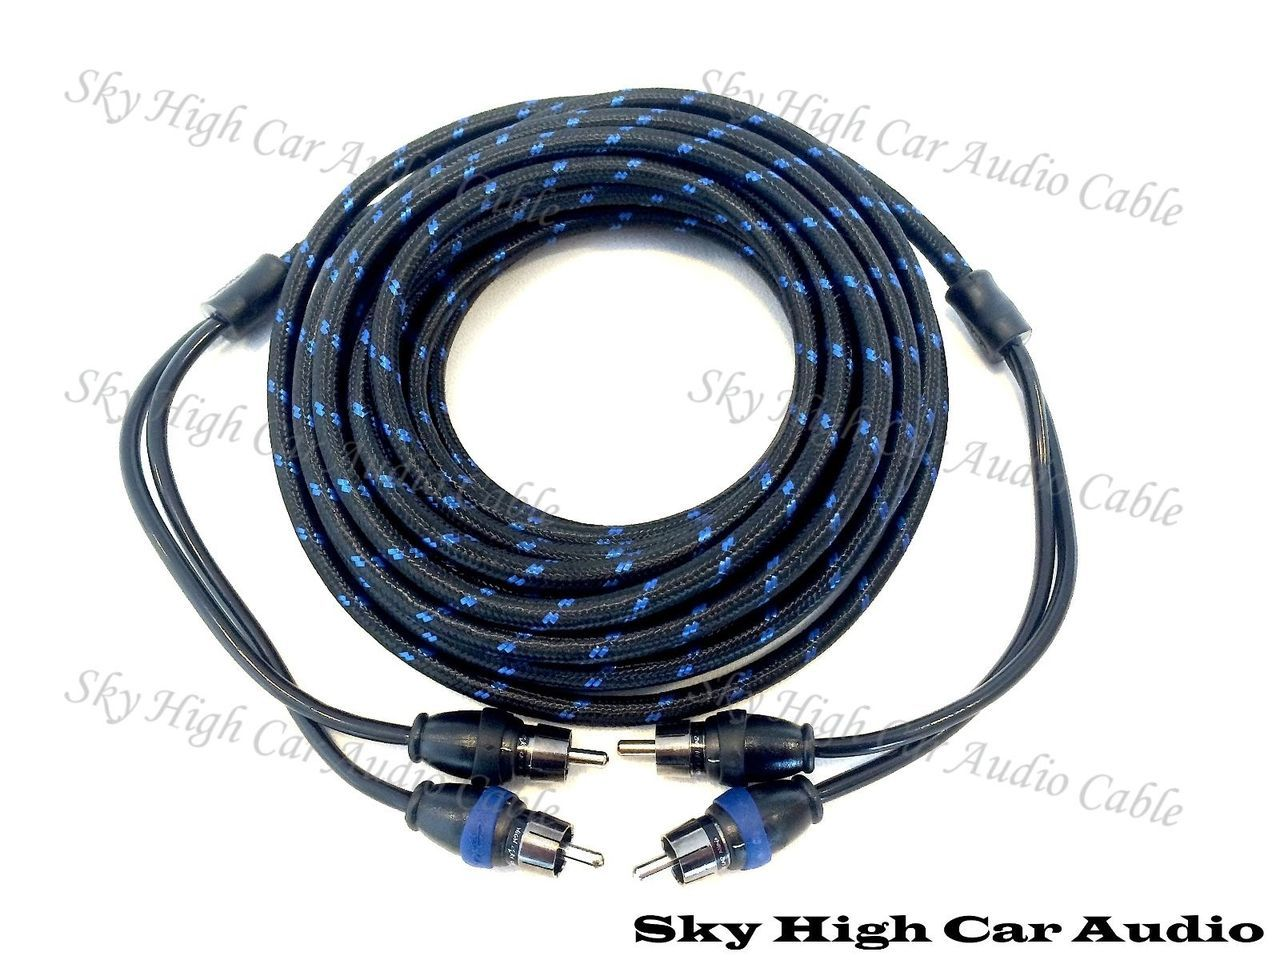 Sky High Car Audio 2 Channel Triple Shielded RCA Cable